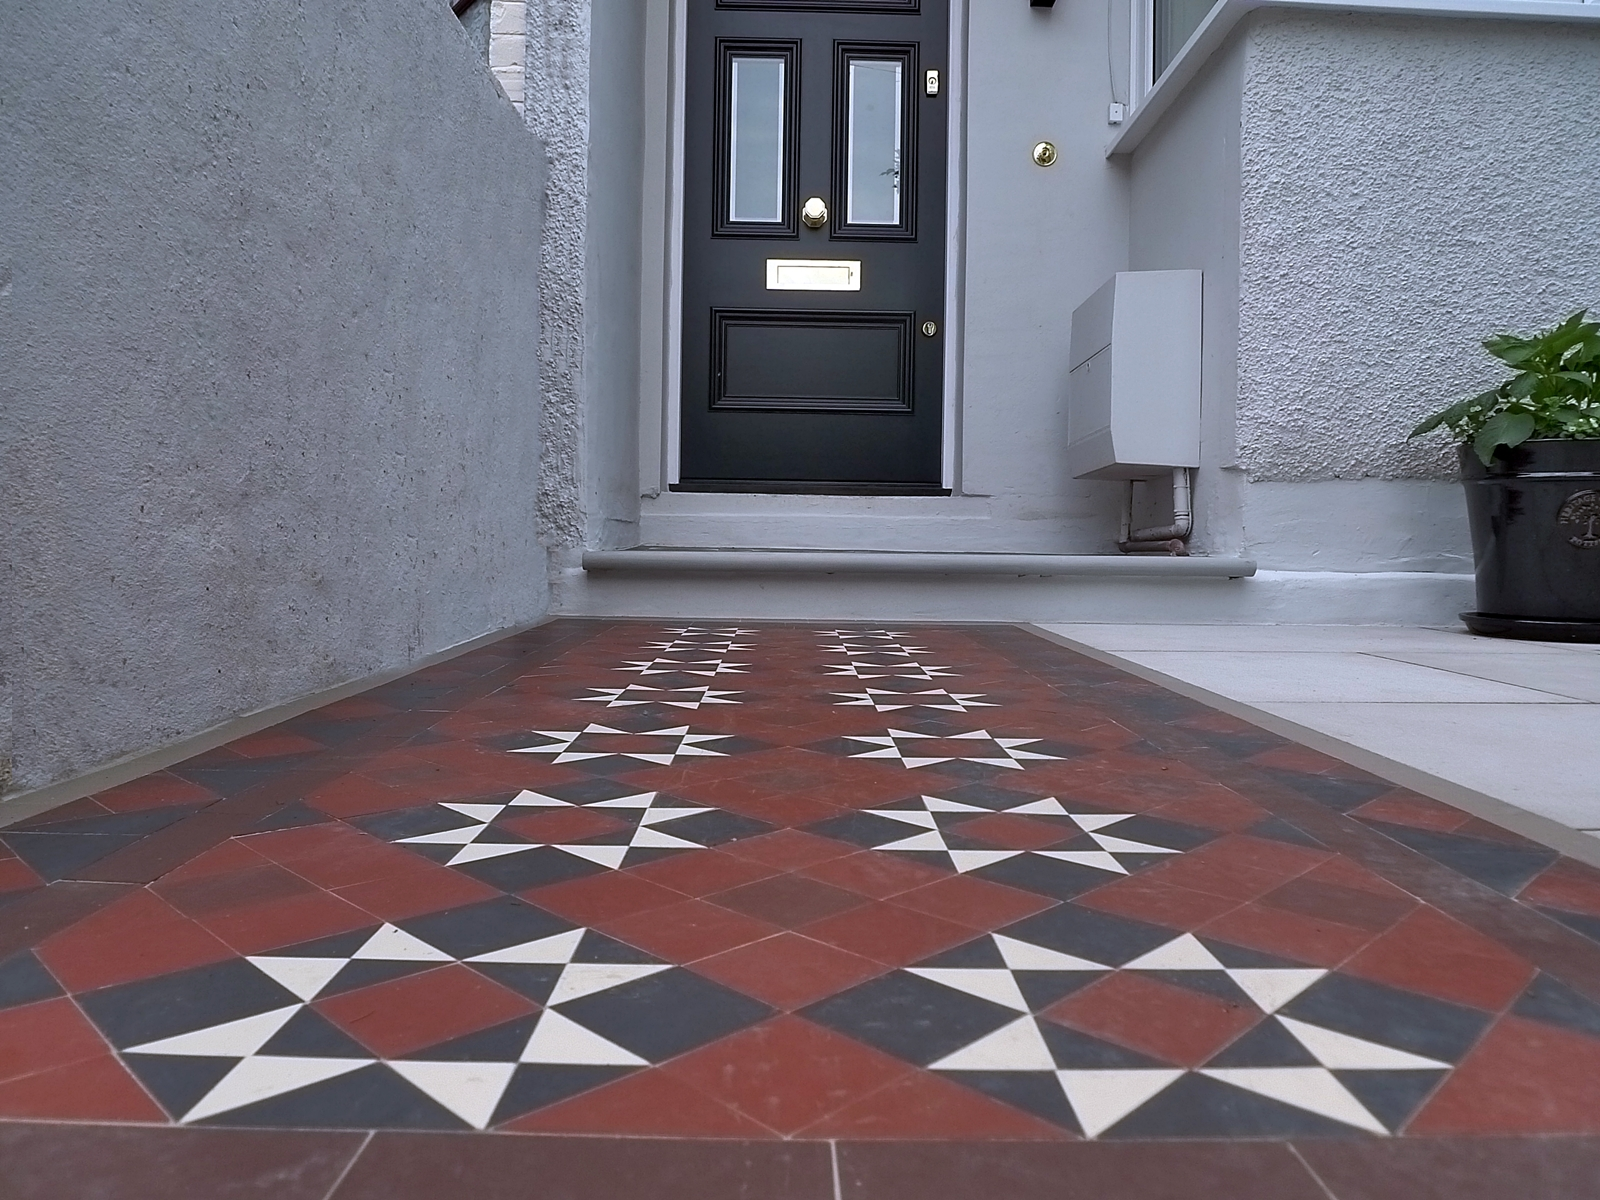 victorian edwardian mosaic tile path red black and white wandsworth earlsfield southfields wimbledon putney london